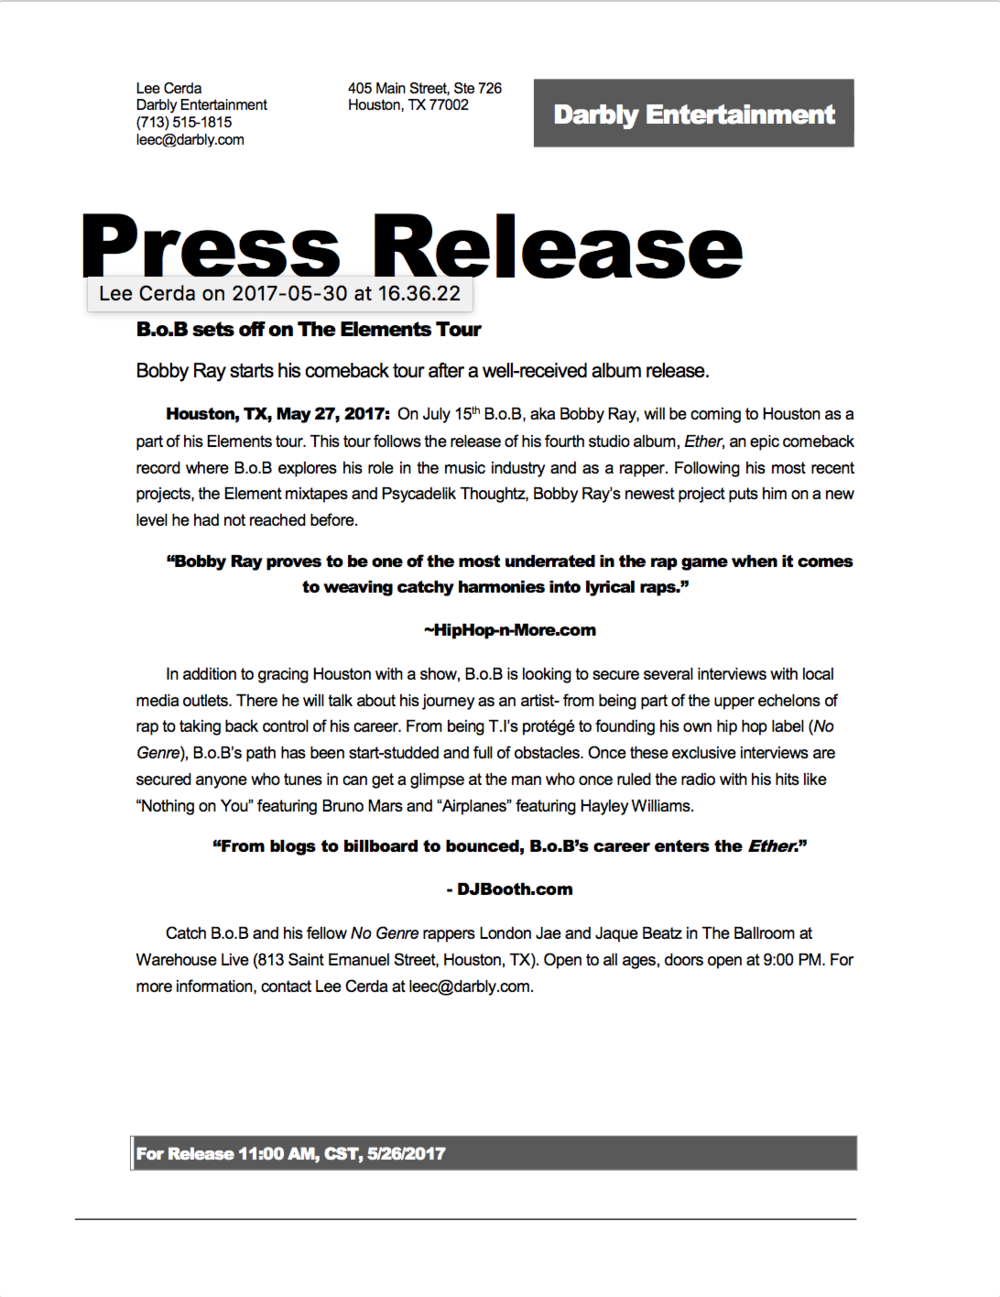 Click to enlarge and view the press release.